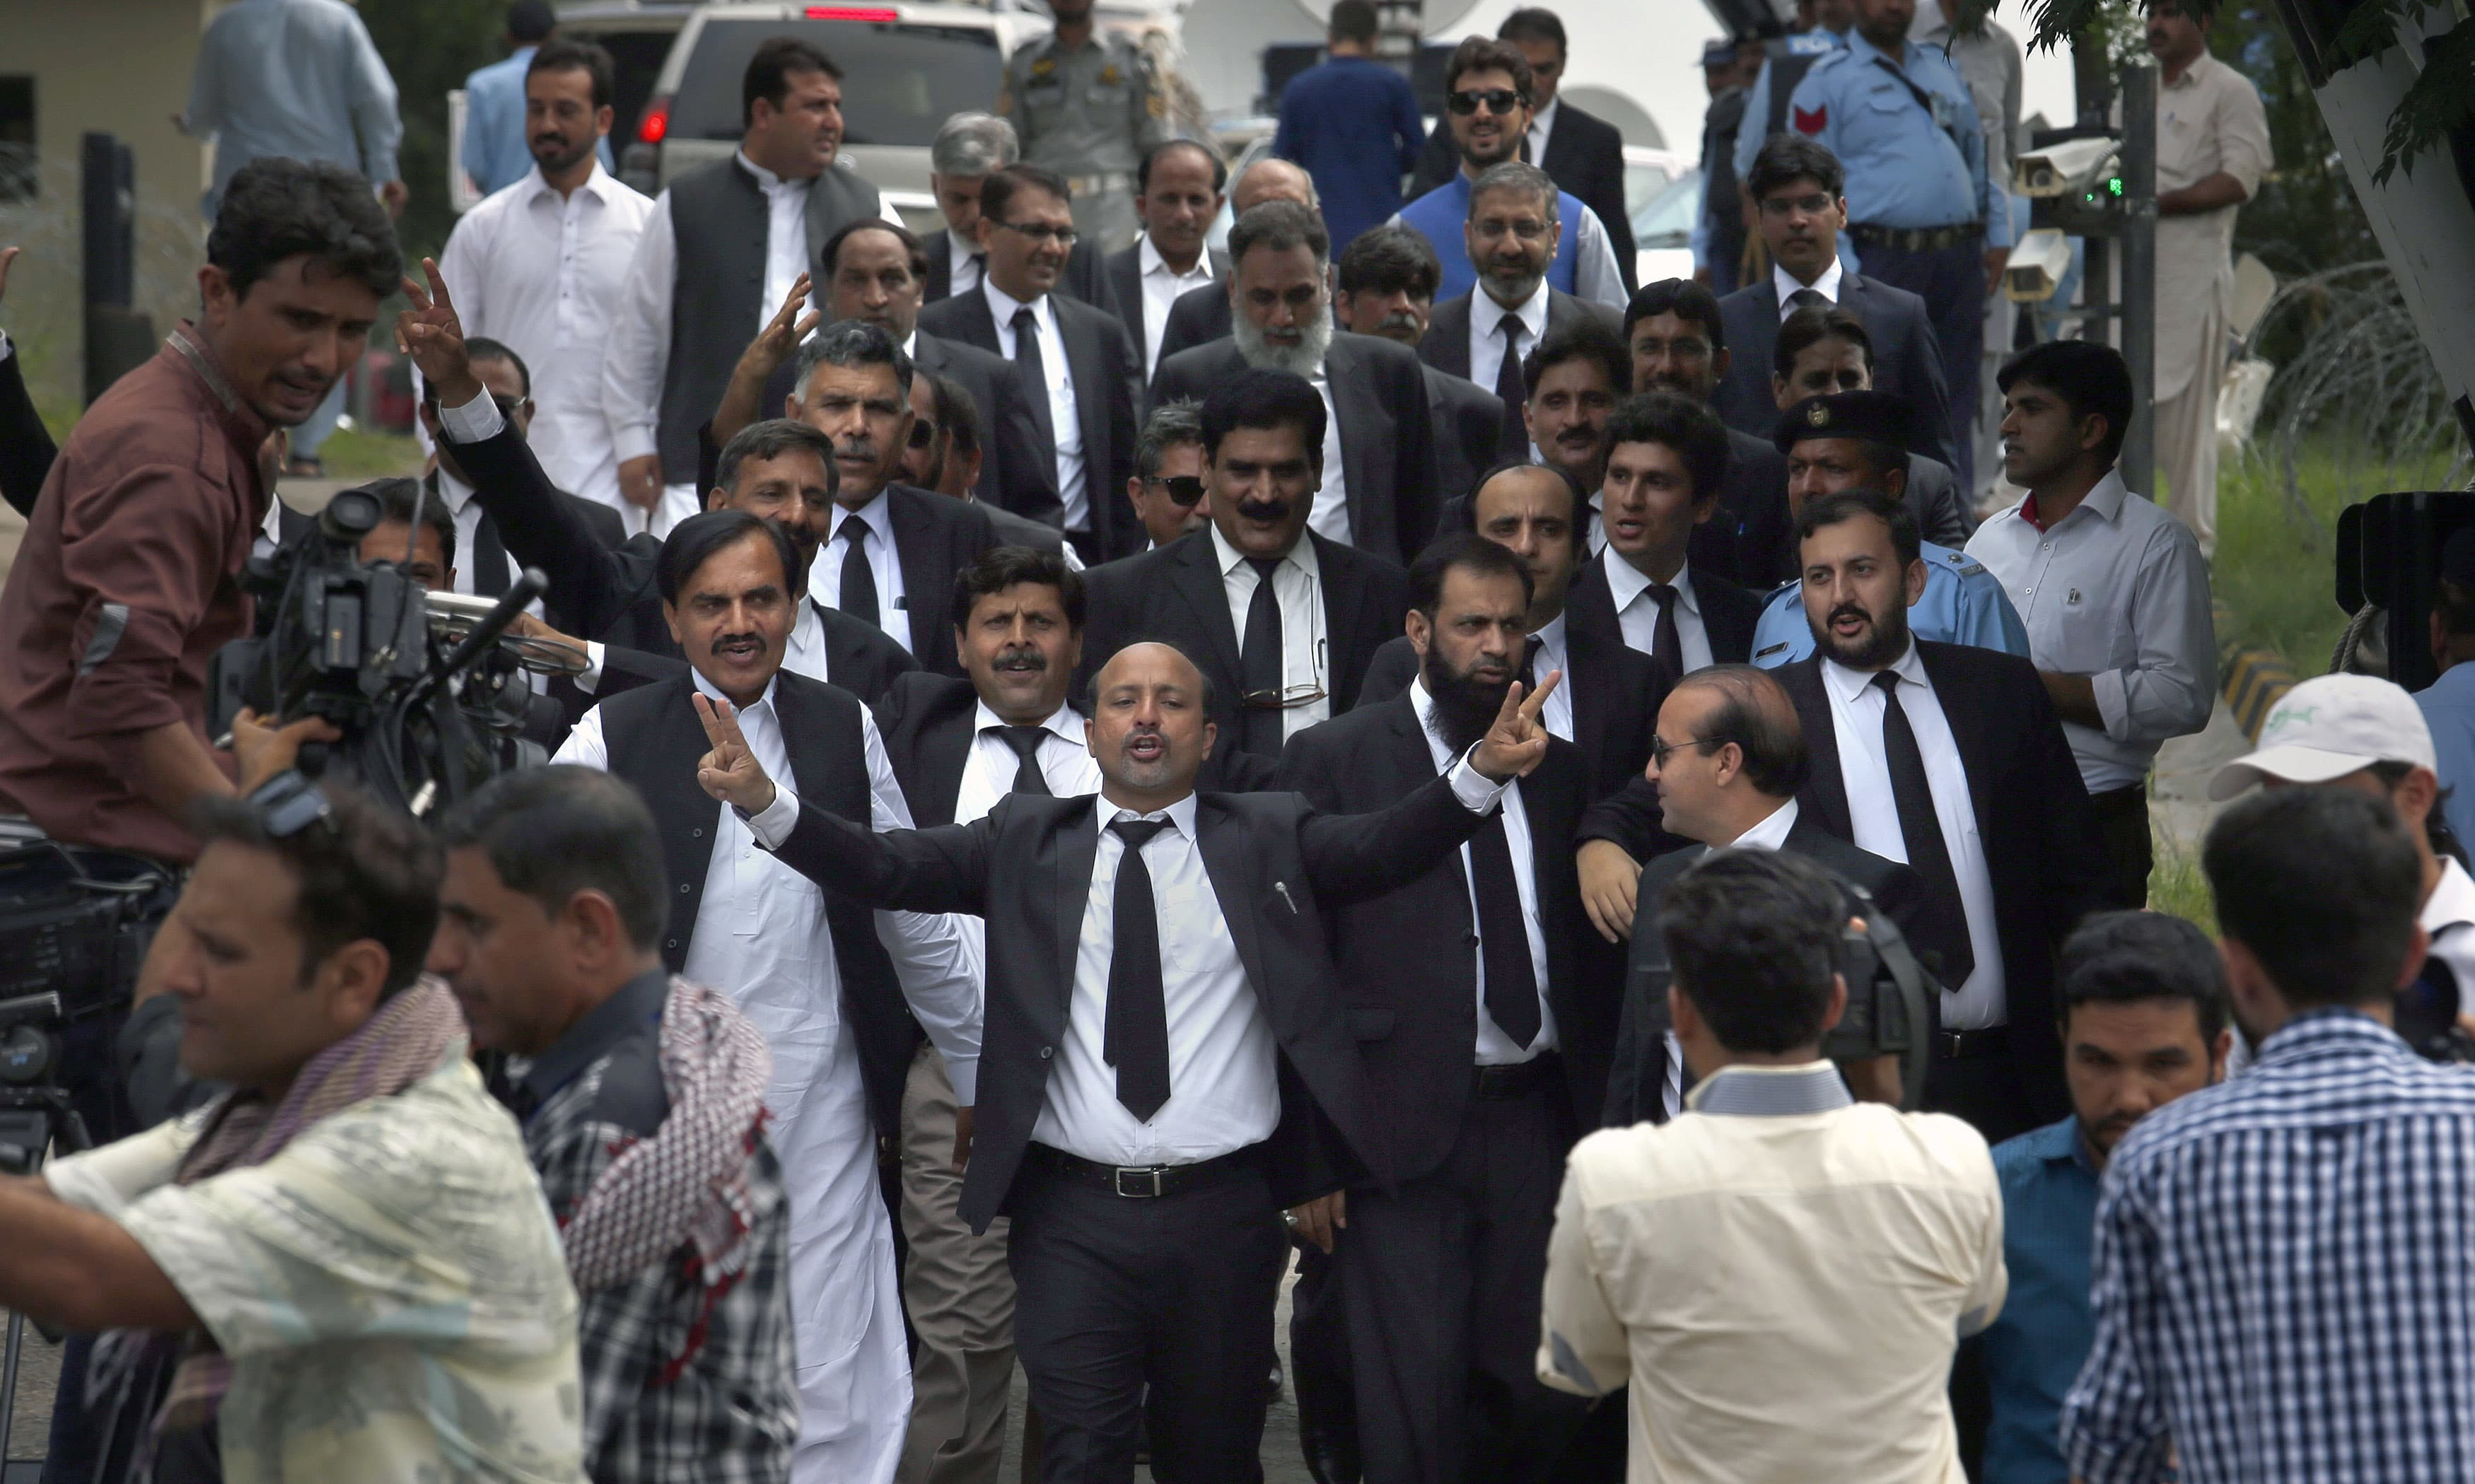 "COVER - Lawyers shout ""go Nawaz go"" after leaving the Supreme Court following proceedings on corruption allegations against Prime Minister Nawaz Sharif's family, in Islamabad, Pakistan, Monday, July 17, 2017. The lawyers for opposition parties requested the court disqualify Sharif as he did not deserve to remain in power after a probe found that the premier and his family possessed wealth beyond their known sources of income. The court is expected to rule on the petitions in the coming weeks. (AP Photo/Anjum Naveed) — Copyright 2017 The Associated Press. All rights reserved."